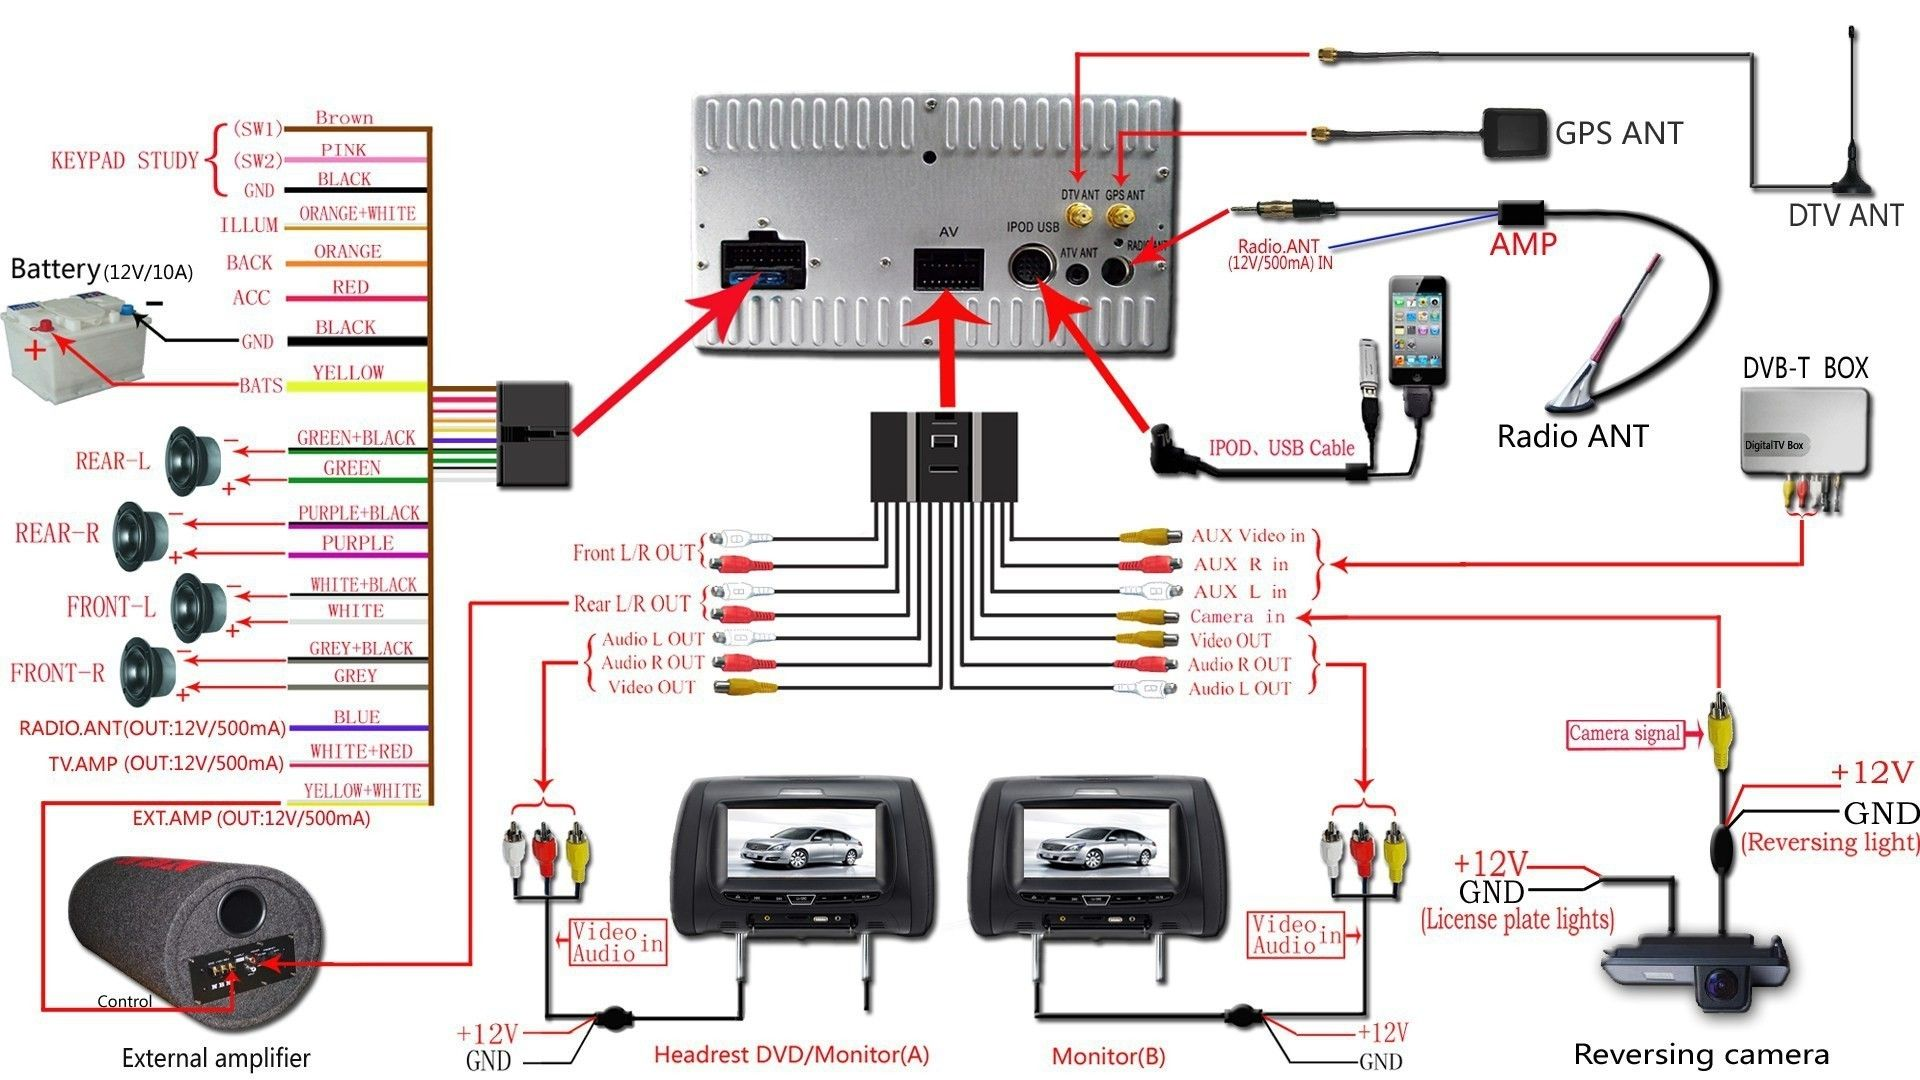 New Wiring Diagram For Dual Car Stereo Diagram Diagramtemplate Diagramsample Car Stereo Car Stereo Systems Car Audio